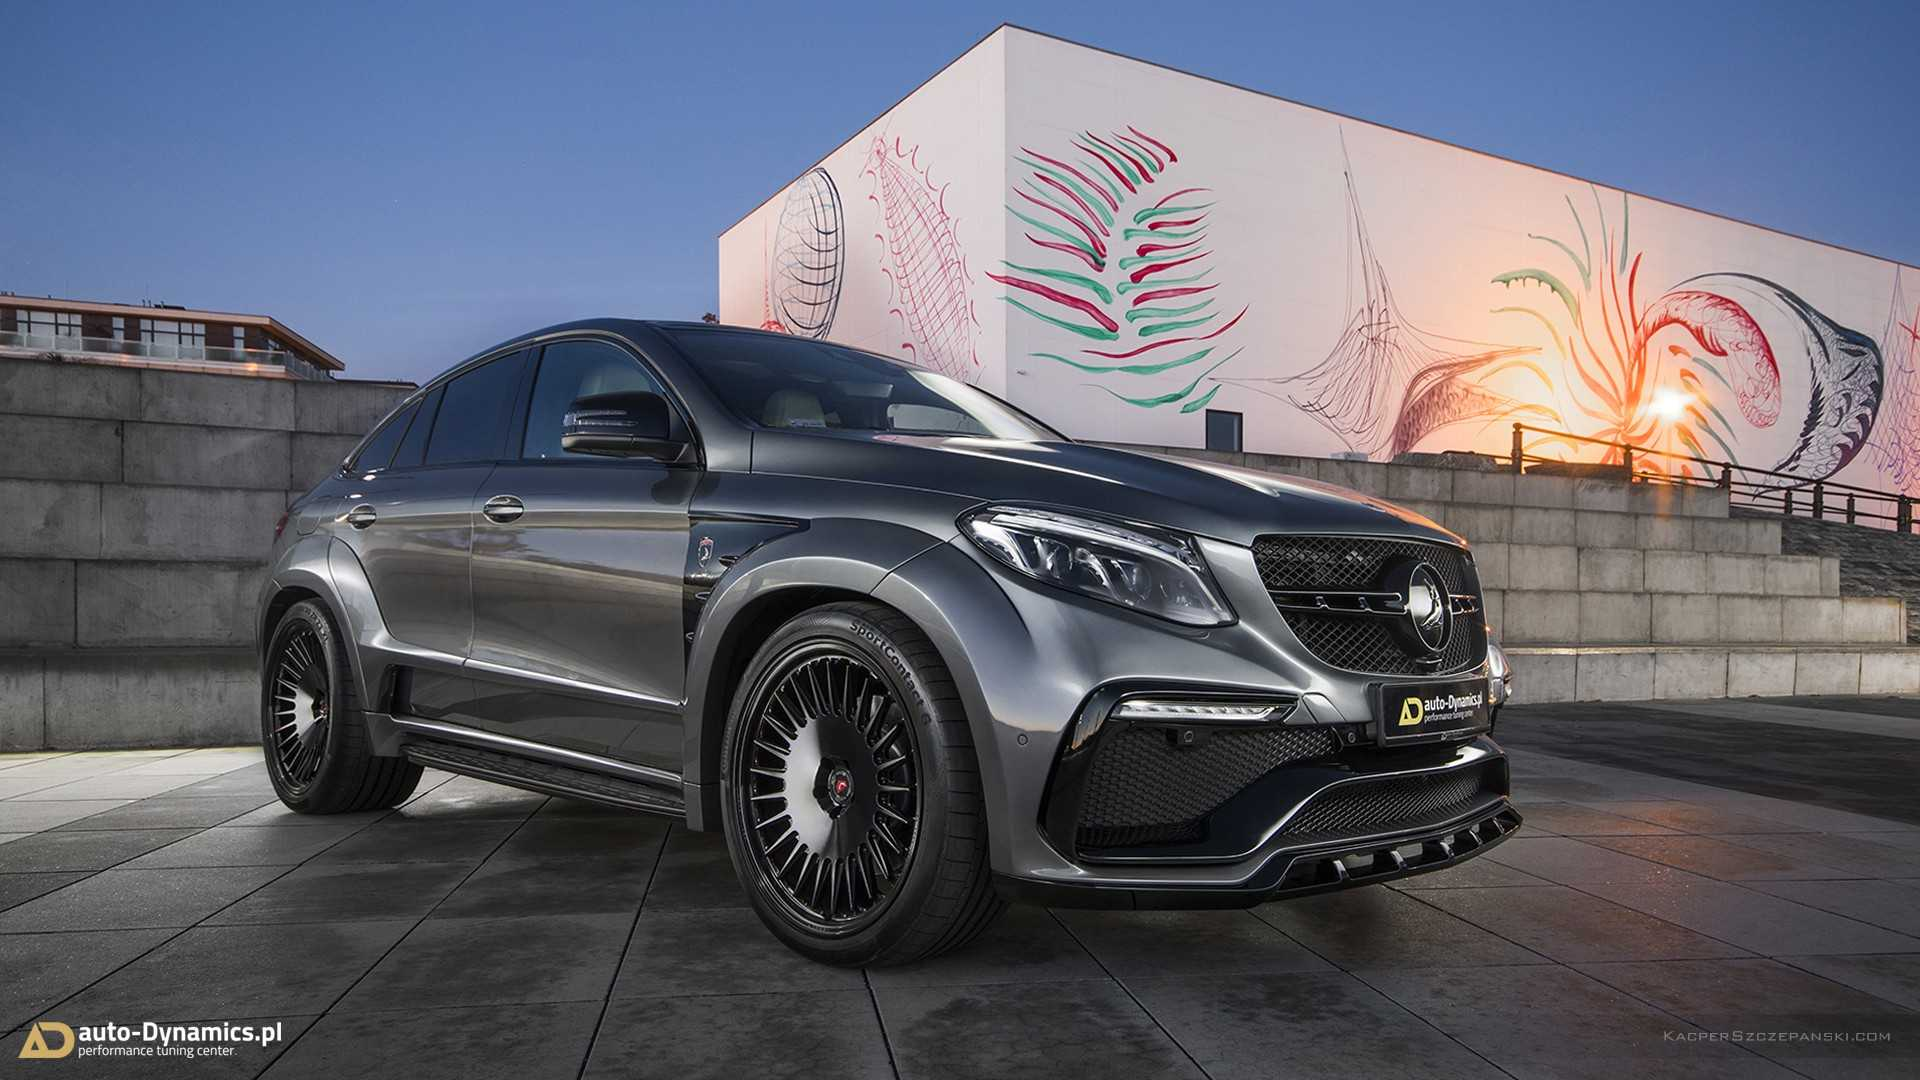 Gle 63s Amg >> 209 Mph Mercedes Amg Gle 63 S Coupe Project Inferno Has 806 Hp